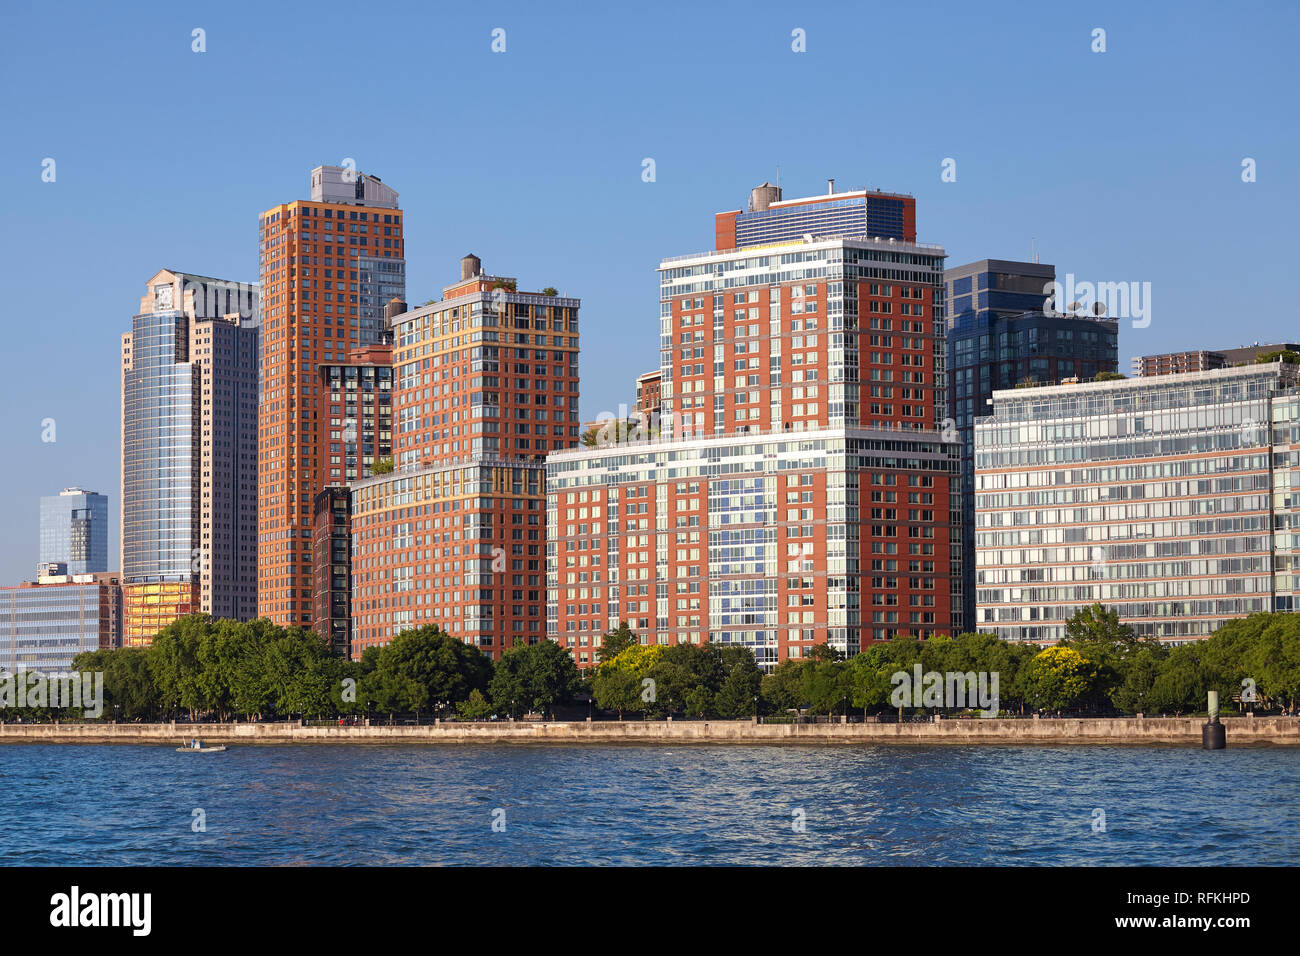 Manhattan Tribeca waterfront Stadtbild, New York City, USA. Stockbild